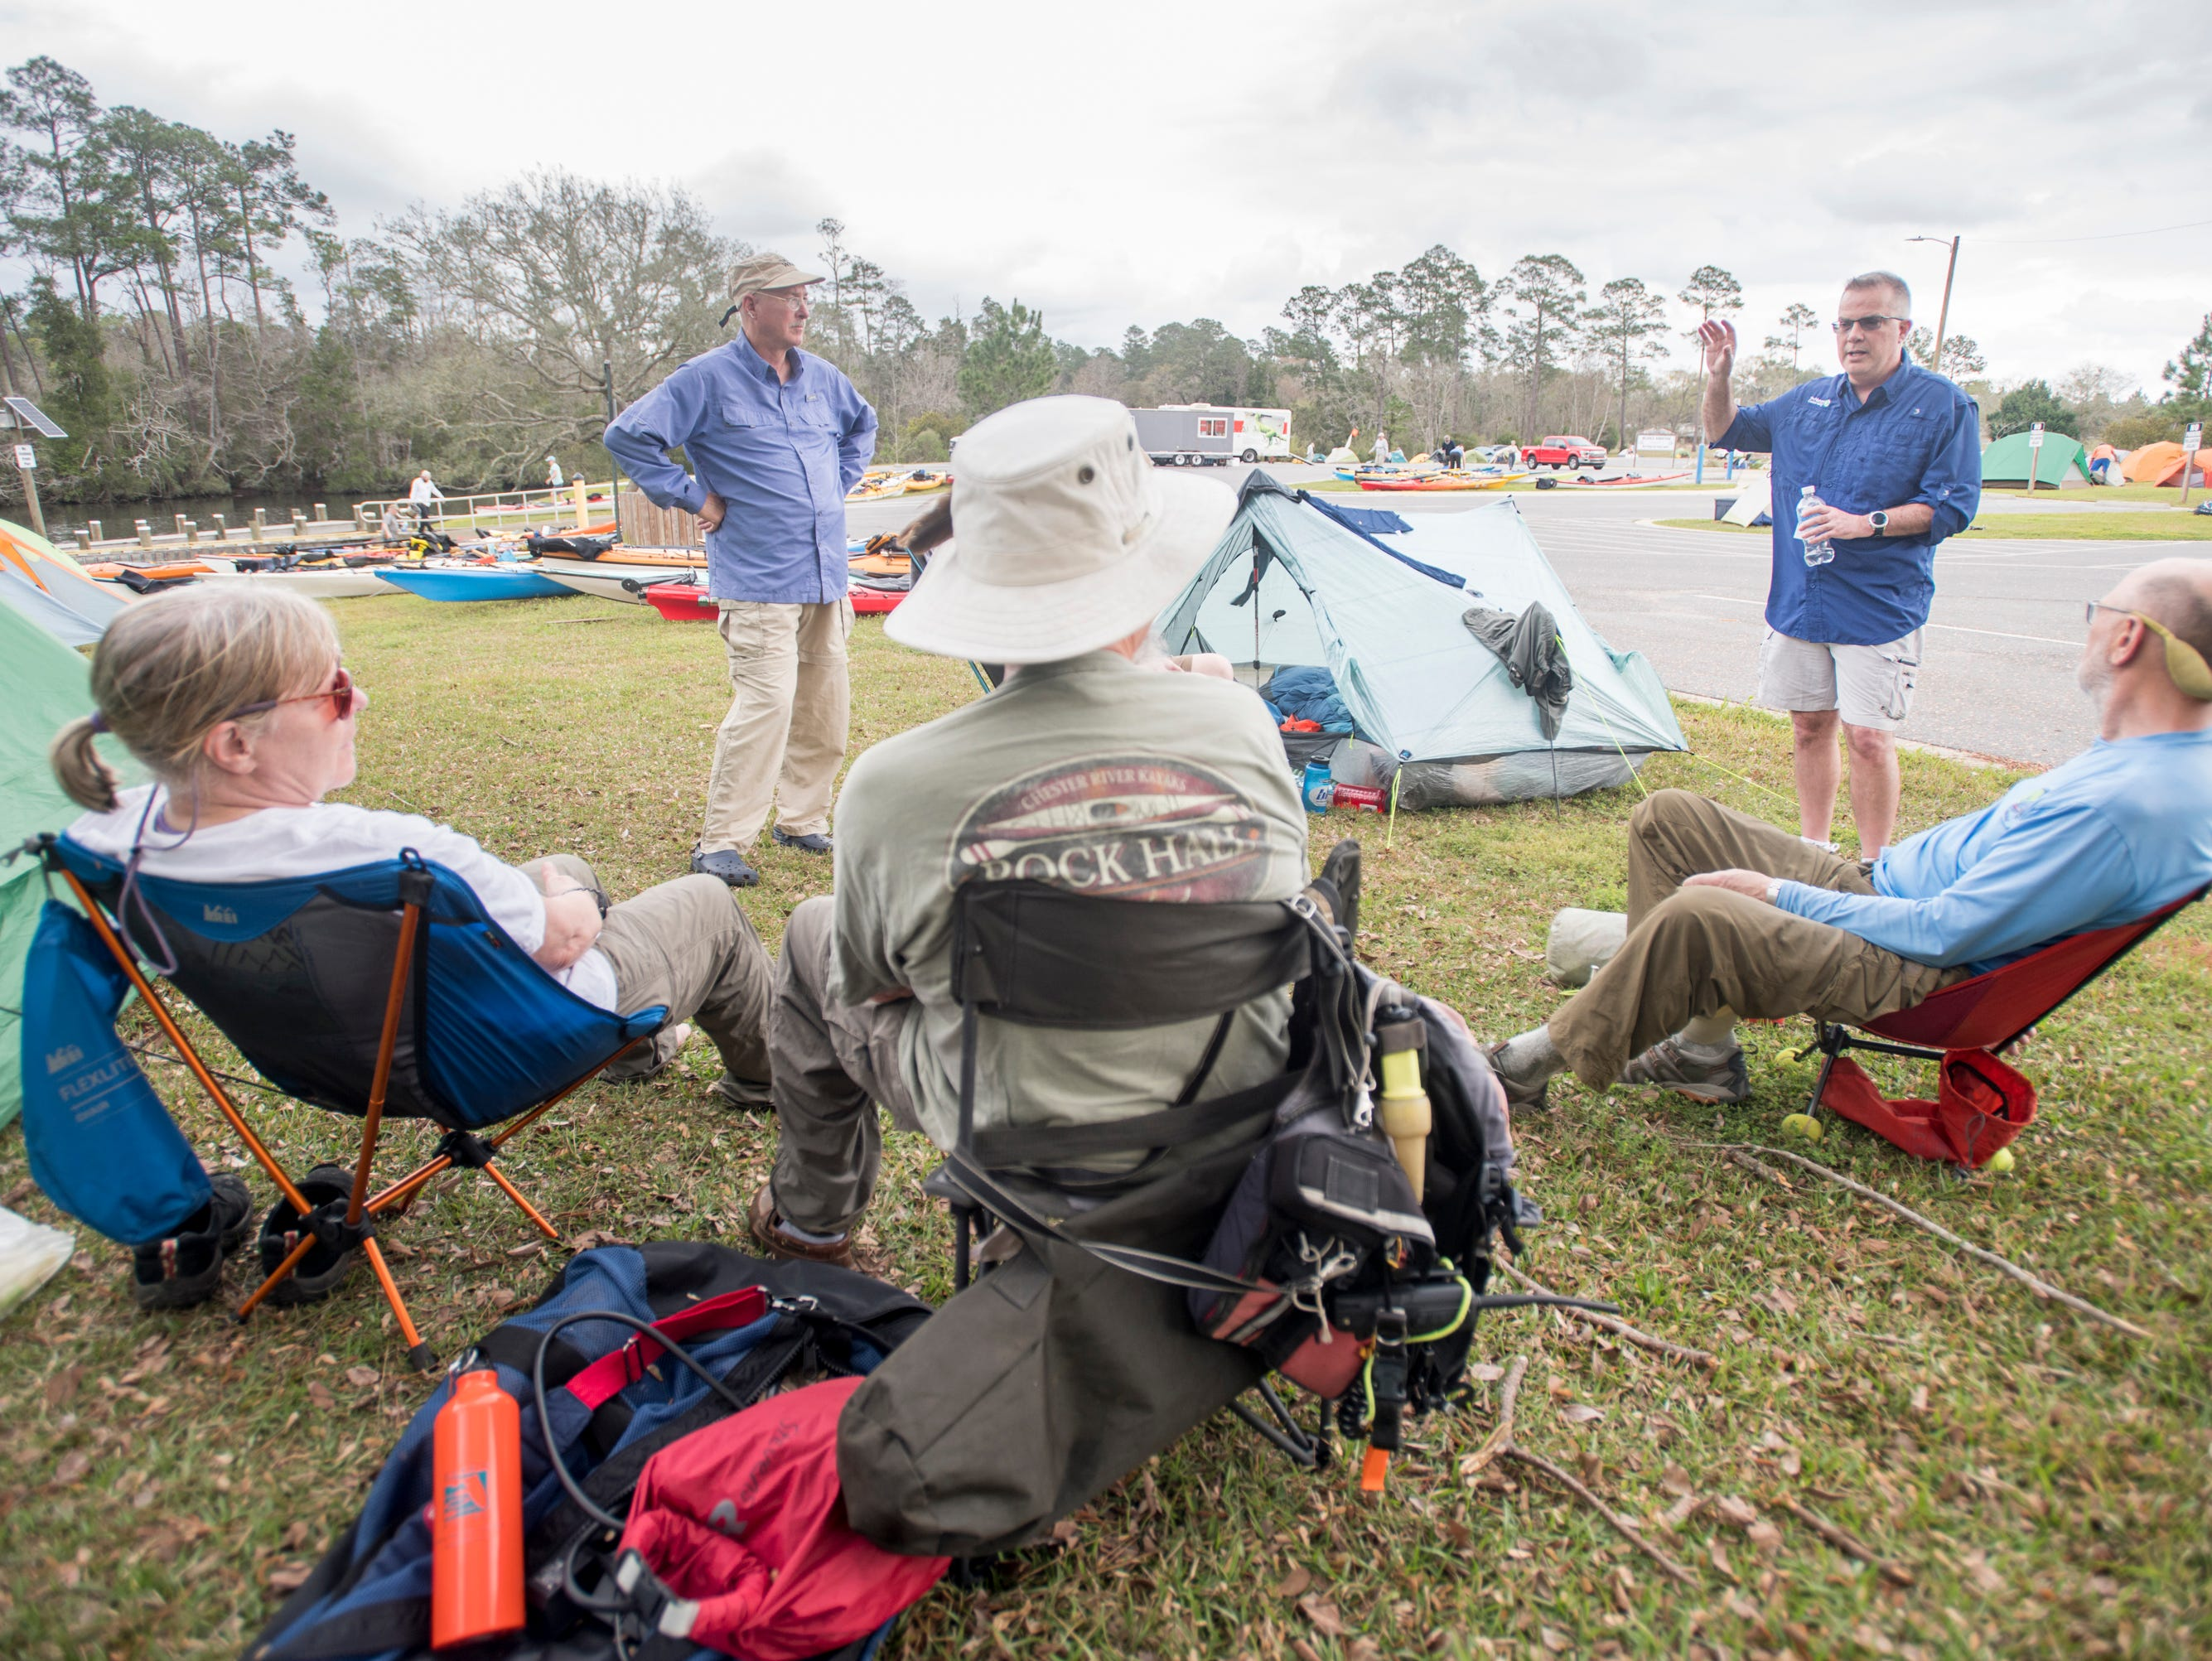 Darryl Boudreau, top right, chats with kayakers at the Wilson Robertson Boat Ramp on the Perdido River in Pensacola on Monday, March 11, 2019.  Paddle Florida is hosting 60 paddlers on a 5-day, 60-mile journey from Otto Hill to Perdido Pass.  Florida is currently working with Alabama to establish a paddling trail on the Perdido River.